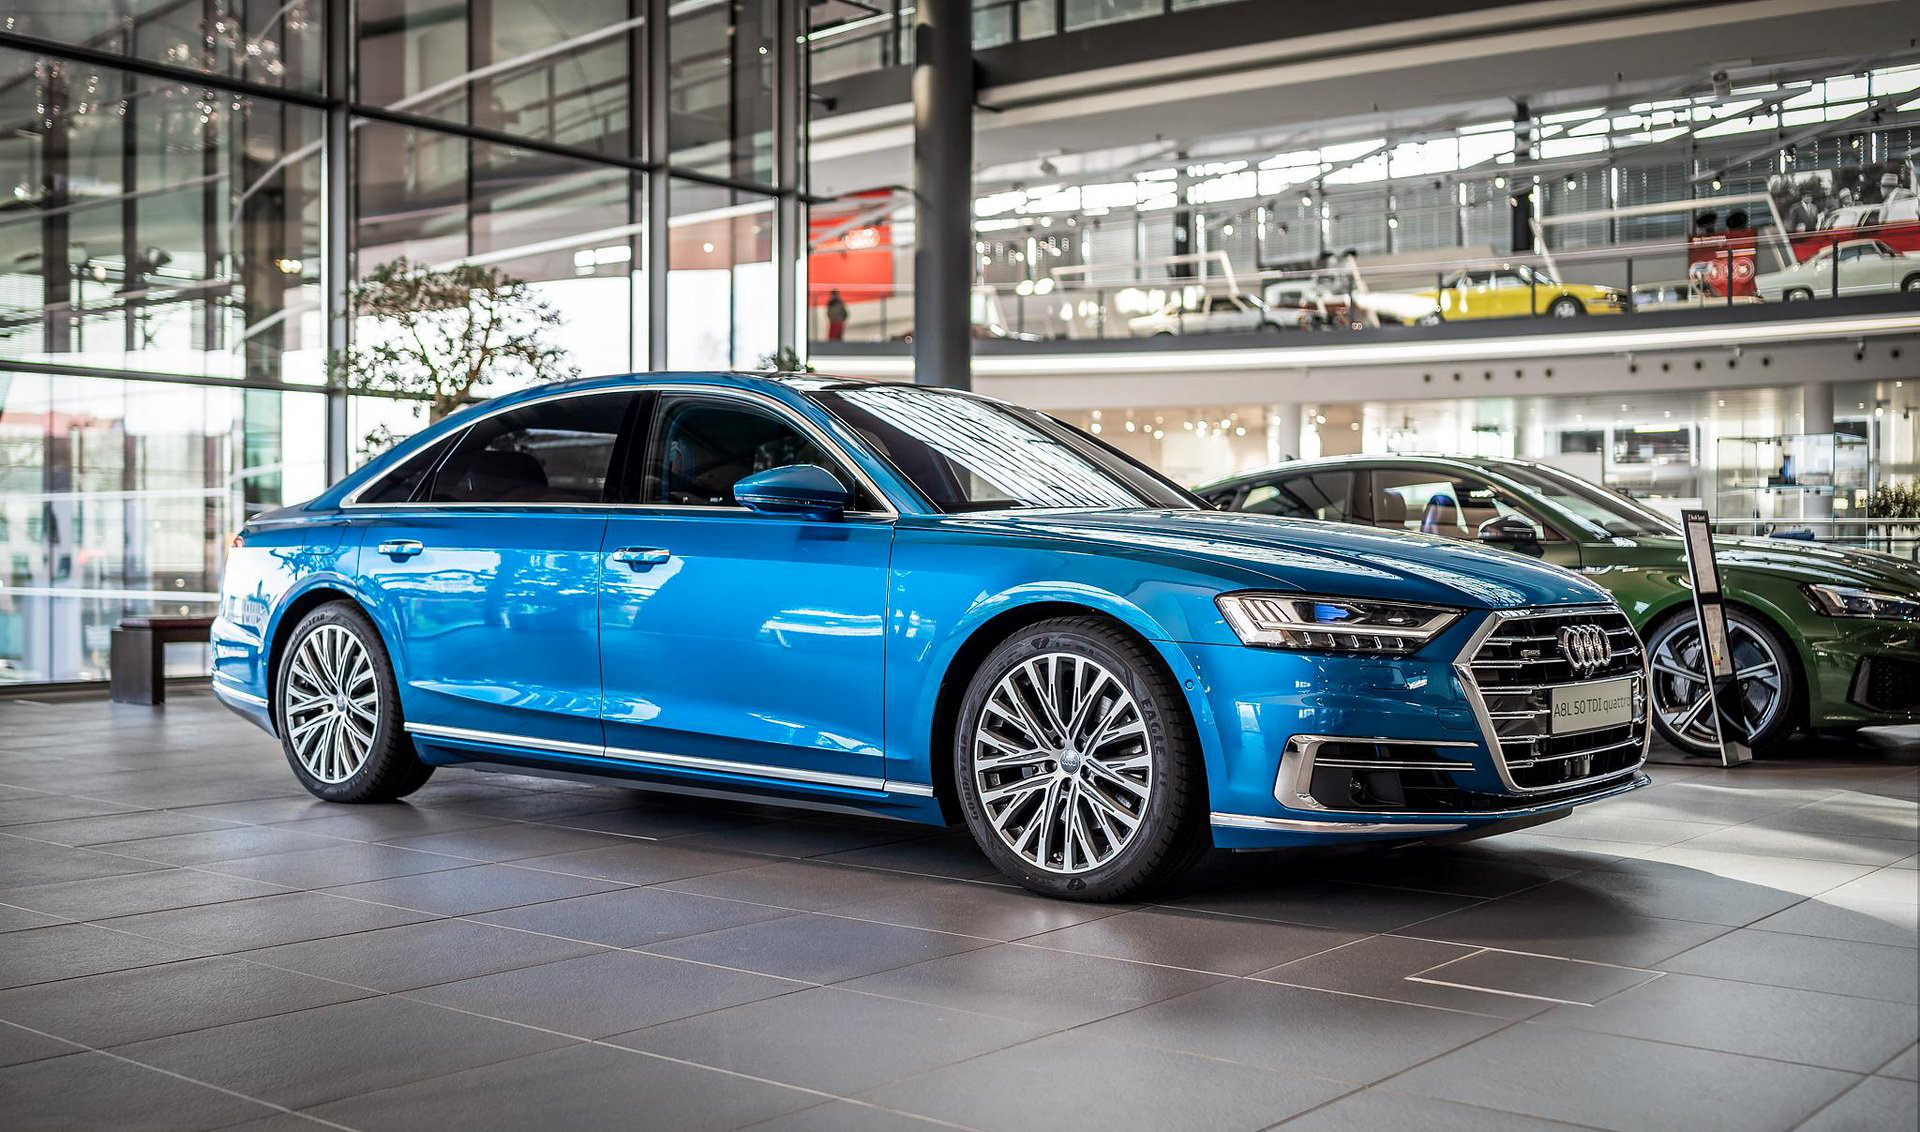 New Audi A8 With Audi With Exclusive Ara Blue Crystal Metallic 3 100 Option Carmojo This Audi A8l Also Has Plenty Of Blue On Audi Audi A8 Blue Crystals